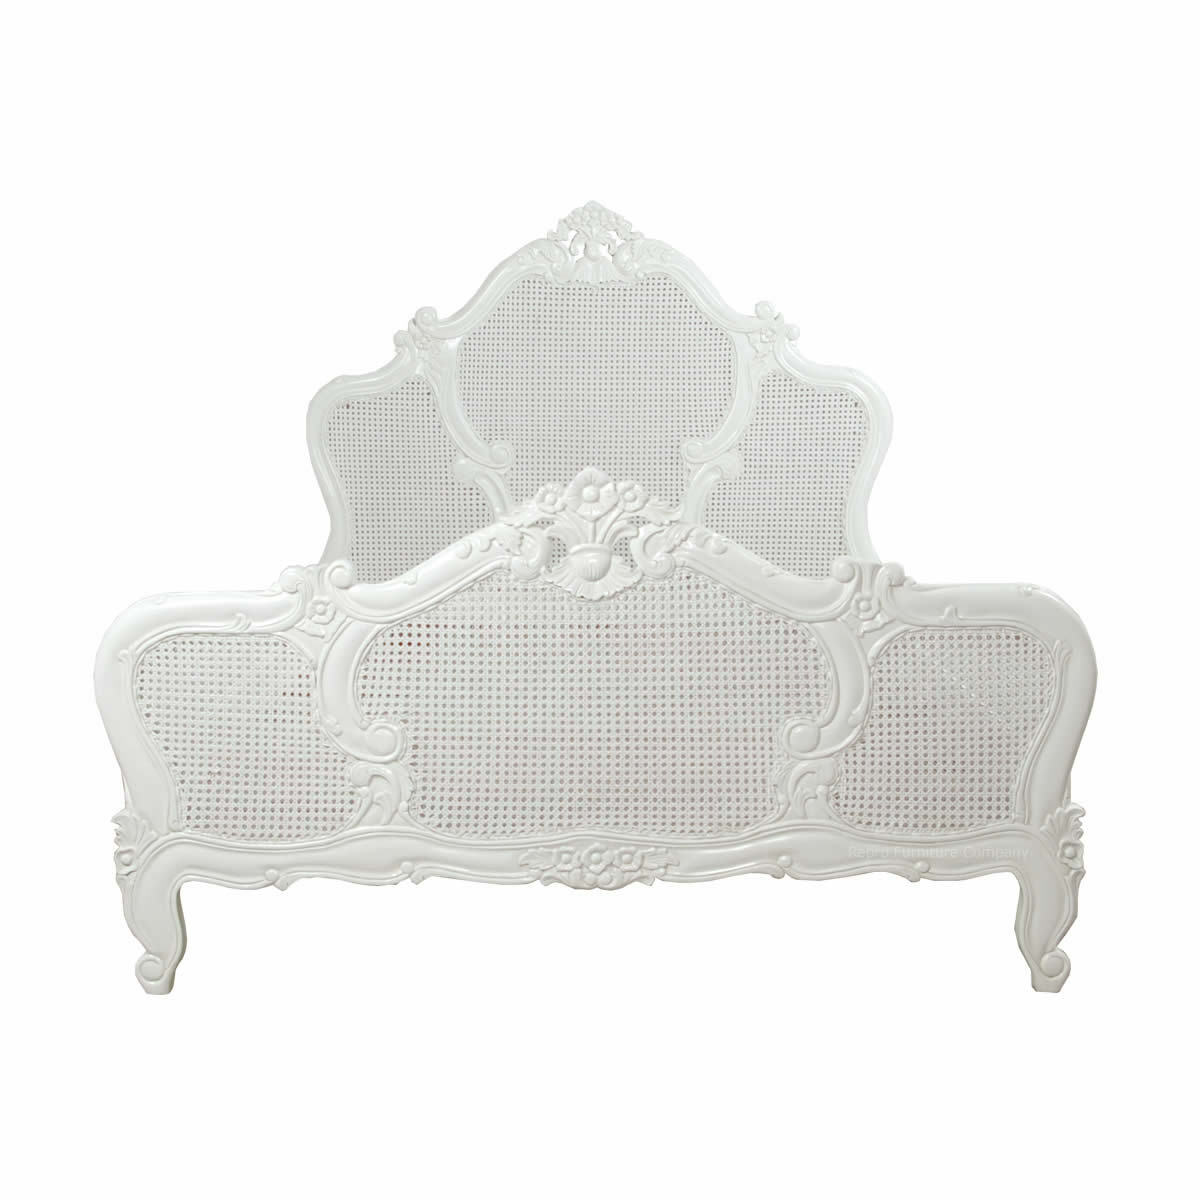 French Bed - Double - Louis Rattan - White Painted - New - 4ft 6